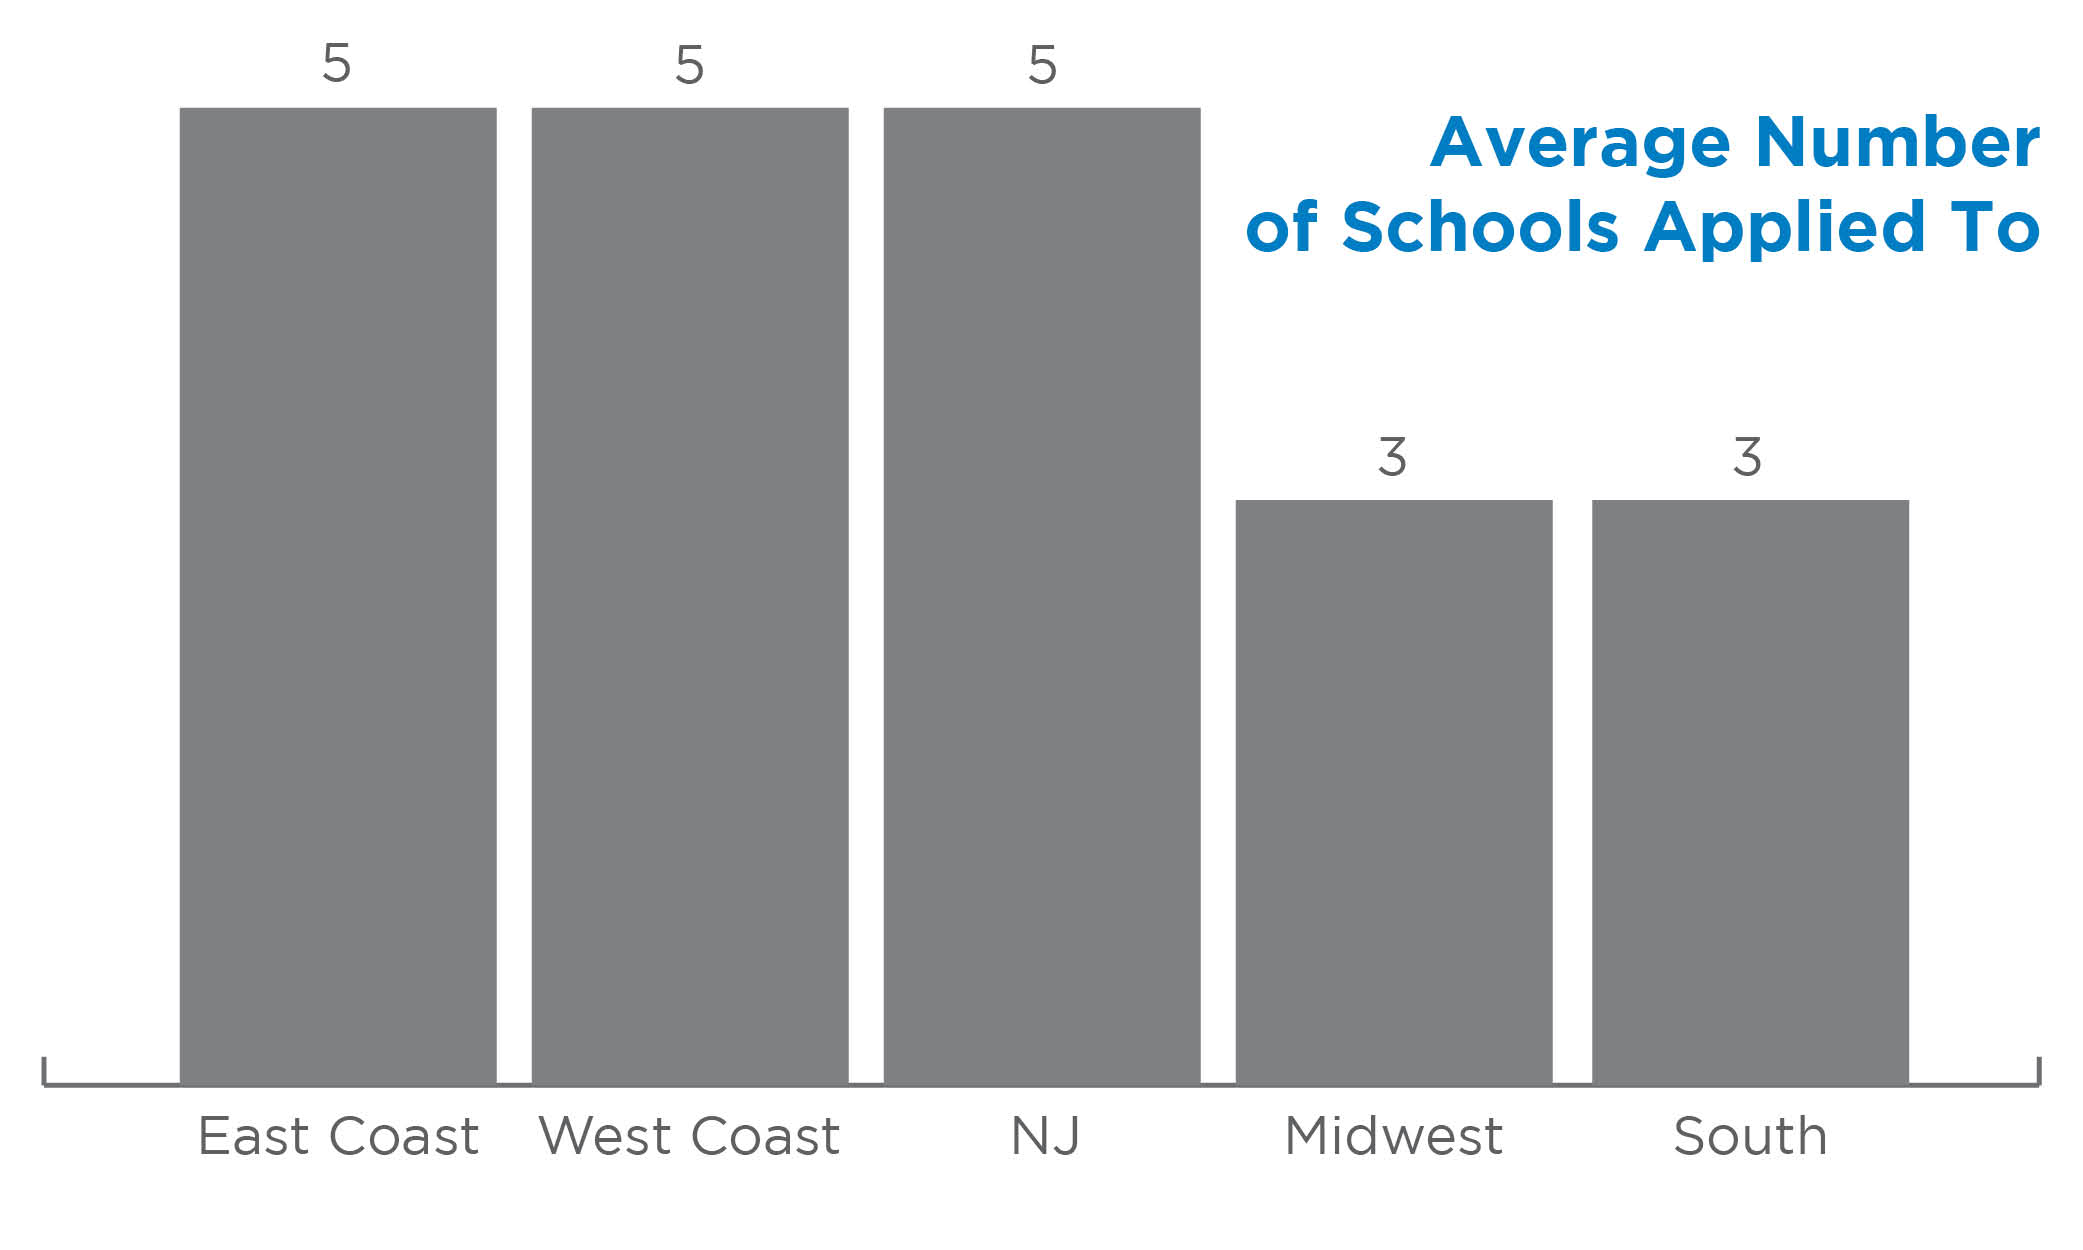 Average Number of Schools Applied